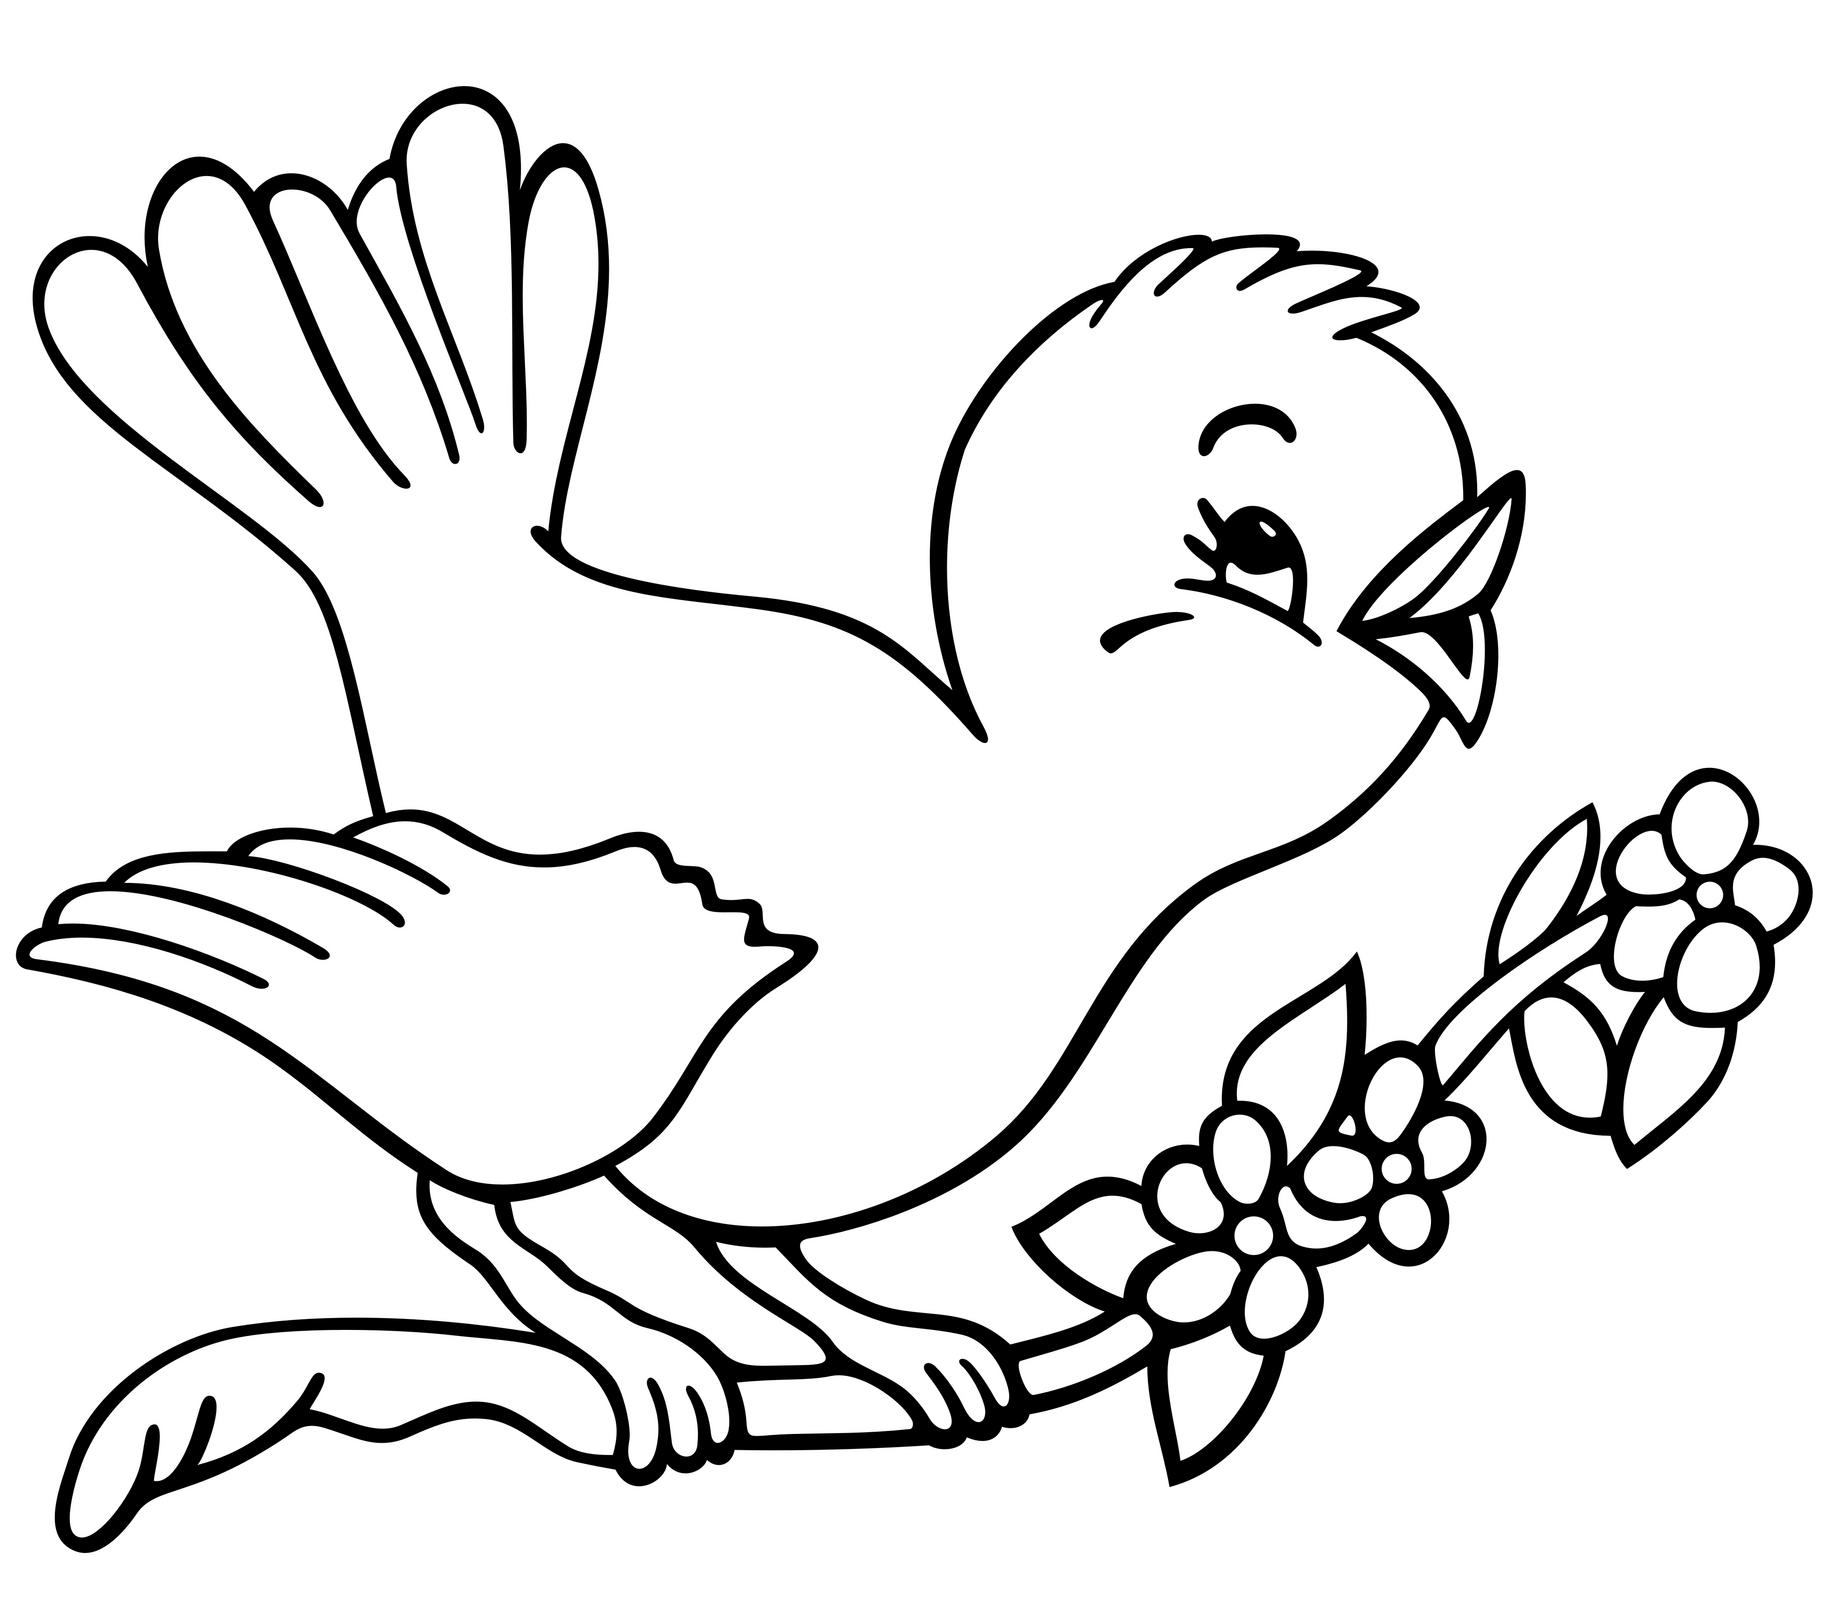 coloring pages of birds cute bird coloring page for kids tsgoscom coloring pages birds of